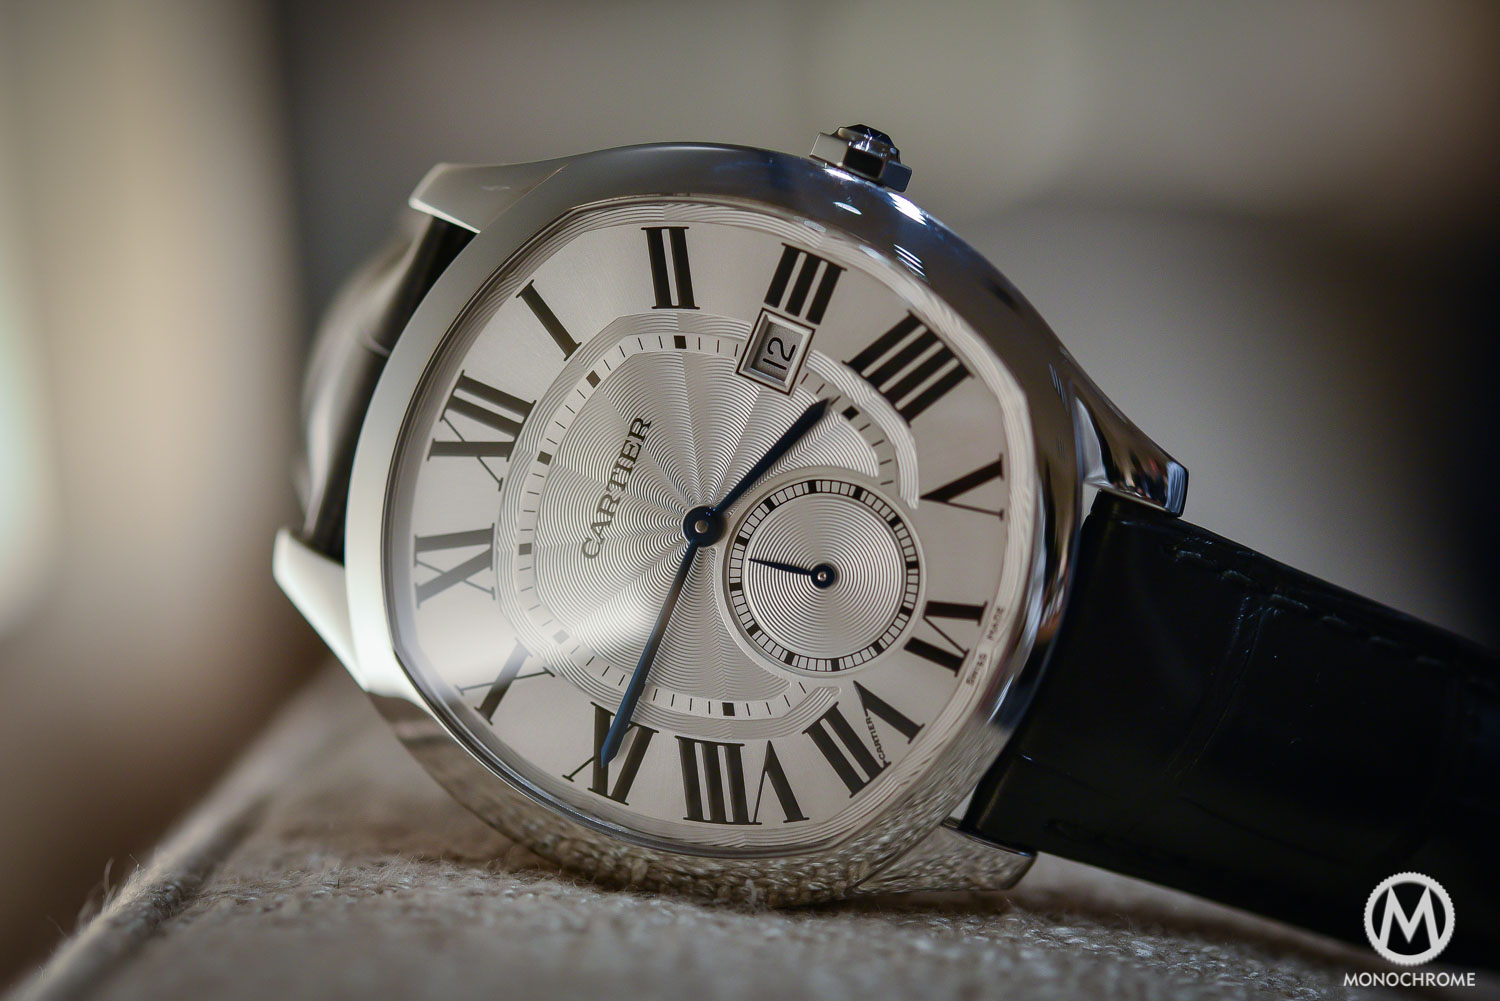 Cartier Watches Sihh 2016 Introducing The Drive De Cartier A New Men S Shaped